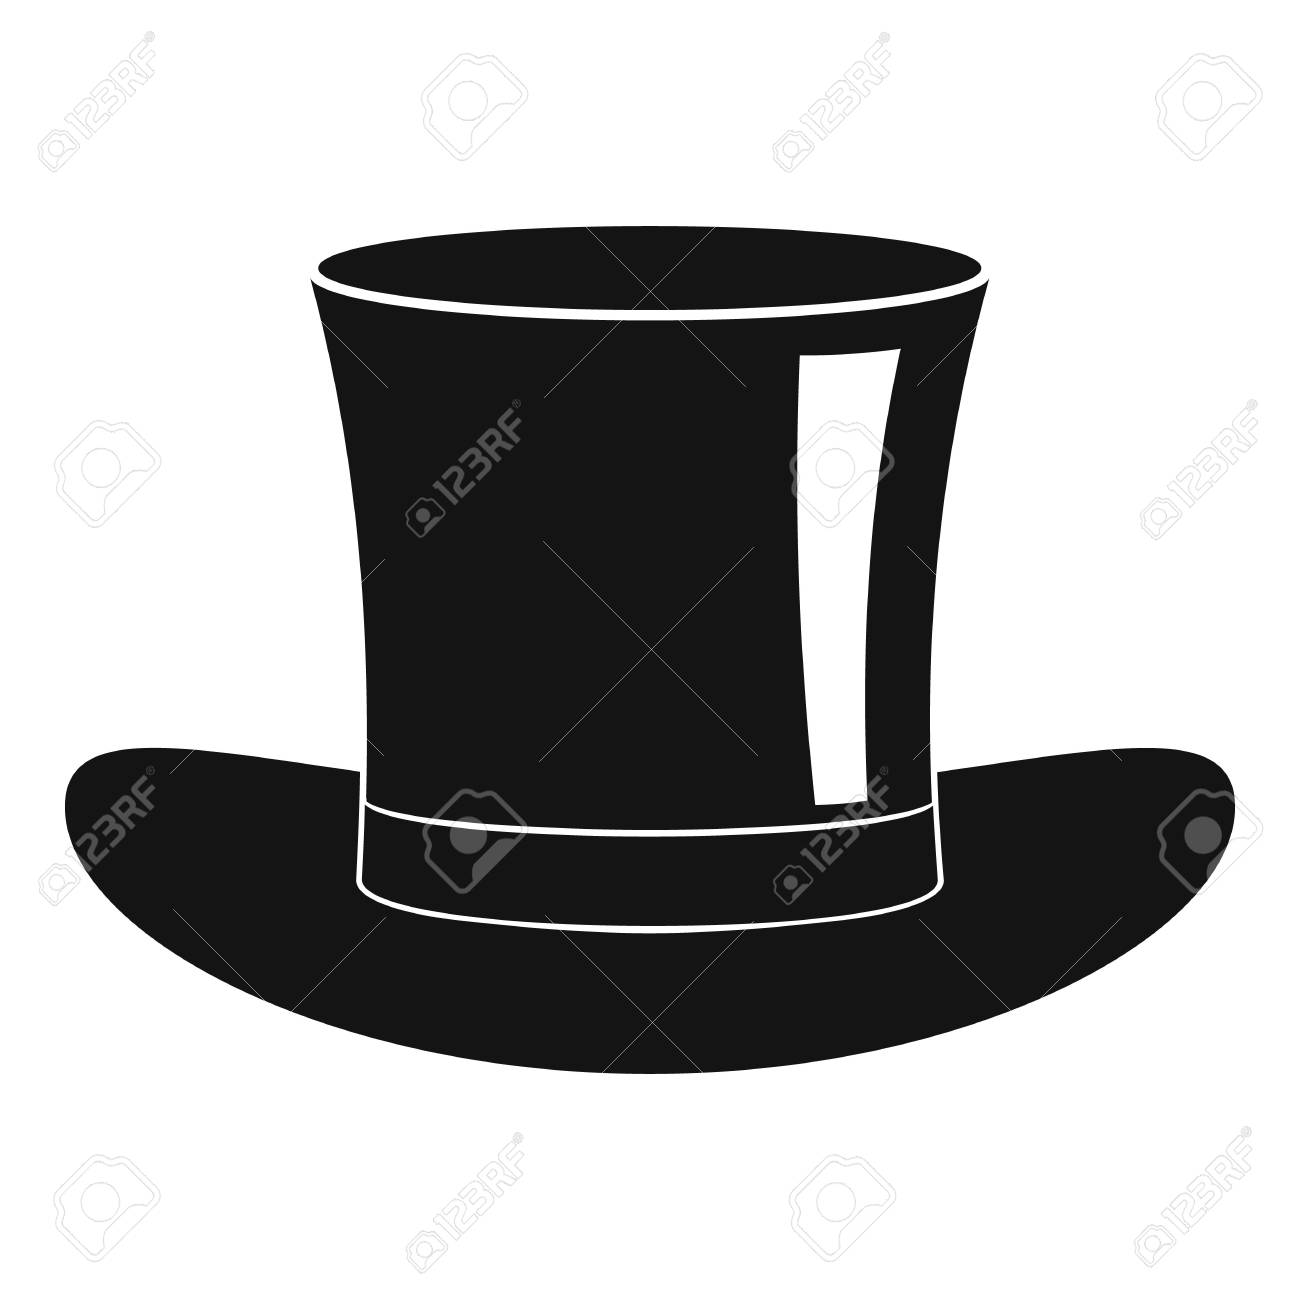 Silk hat icon simple style royalty free cliparts vectors jpg 1300x1300 Silk  hat e5ccfe5aaaf3